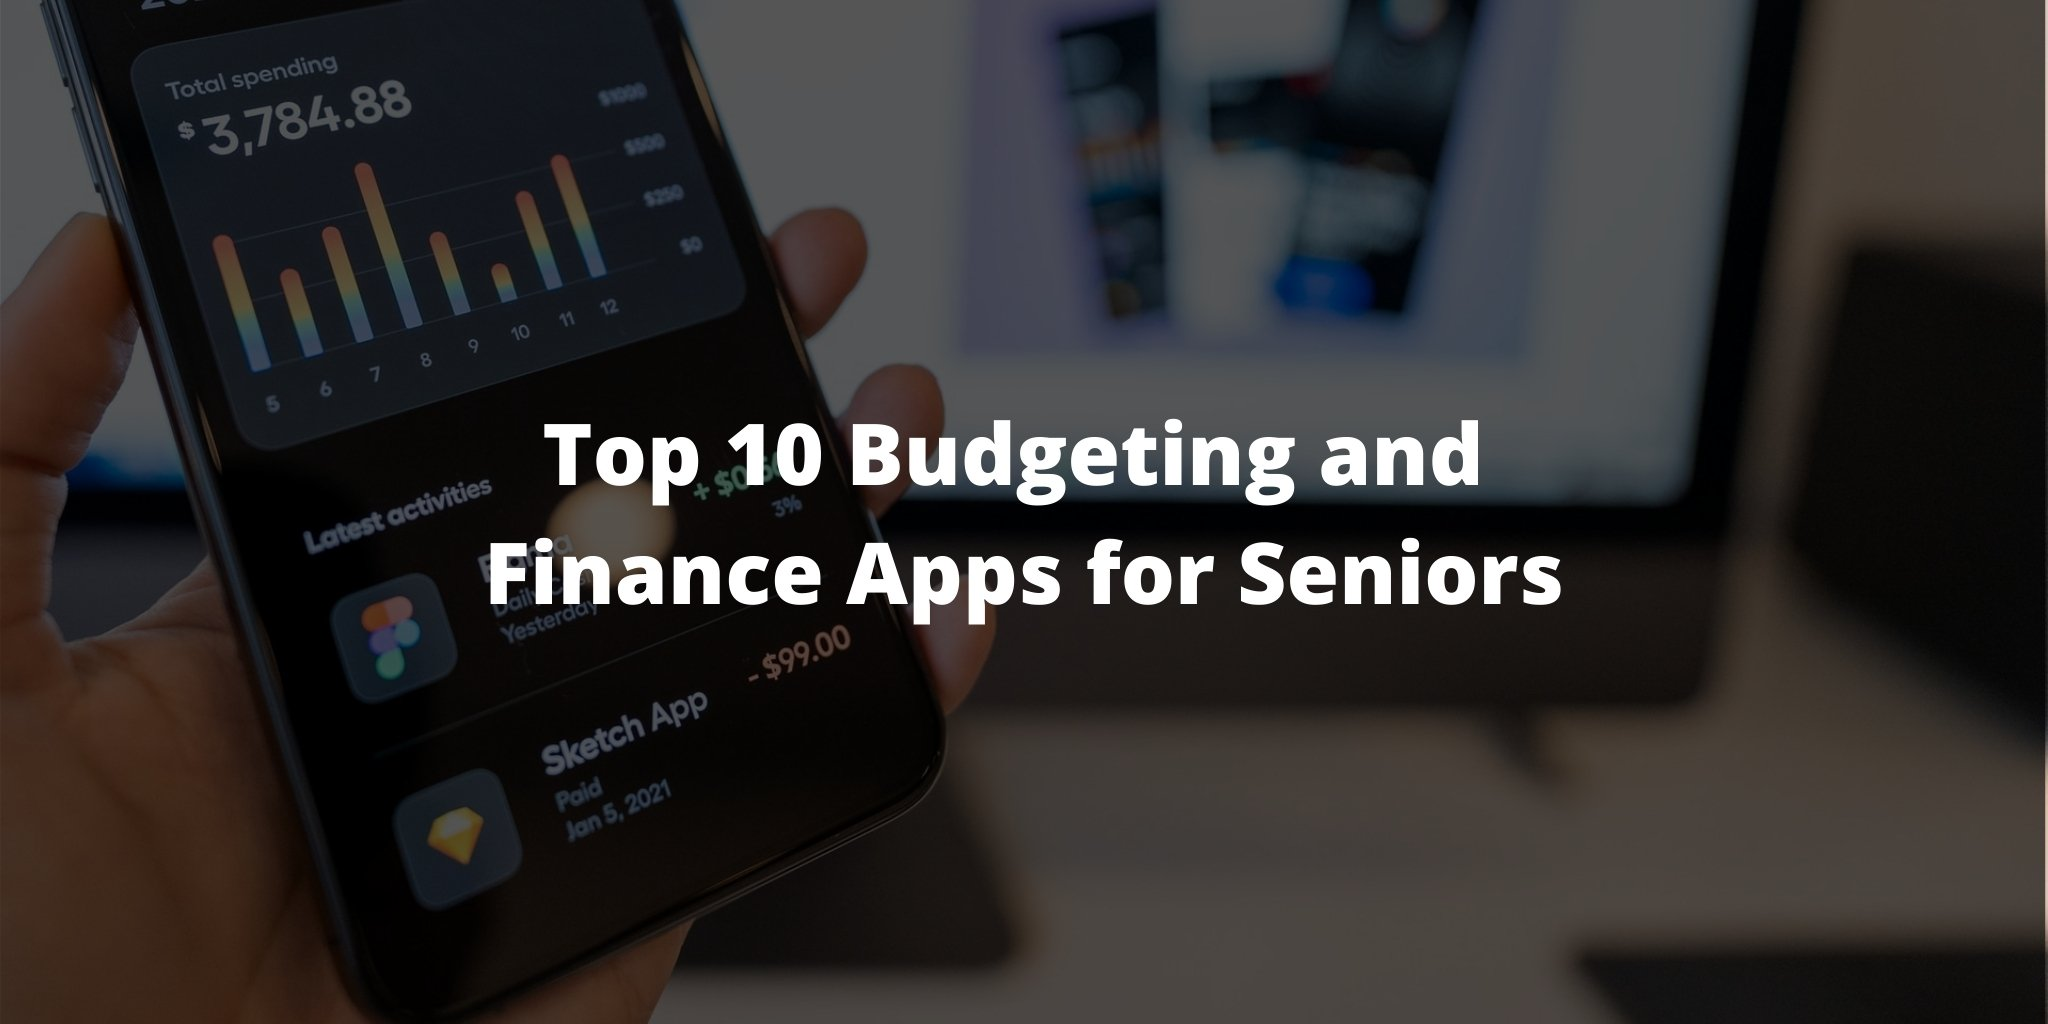 Top 10 Budgeting and Finance Apps for Seniors